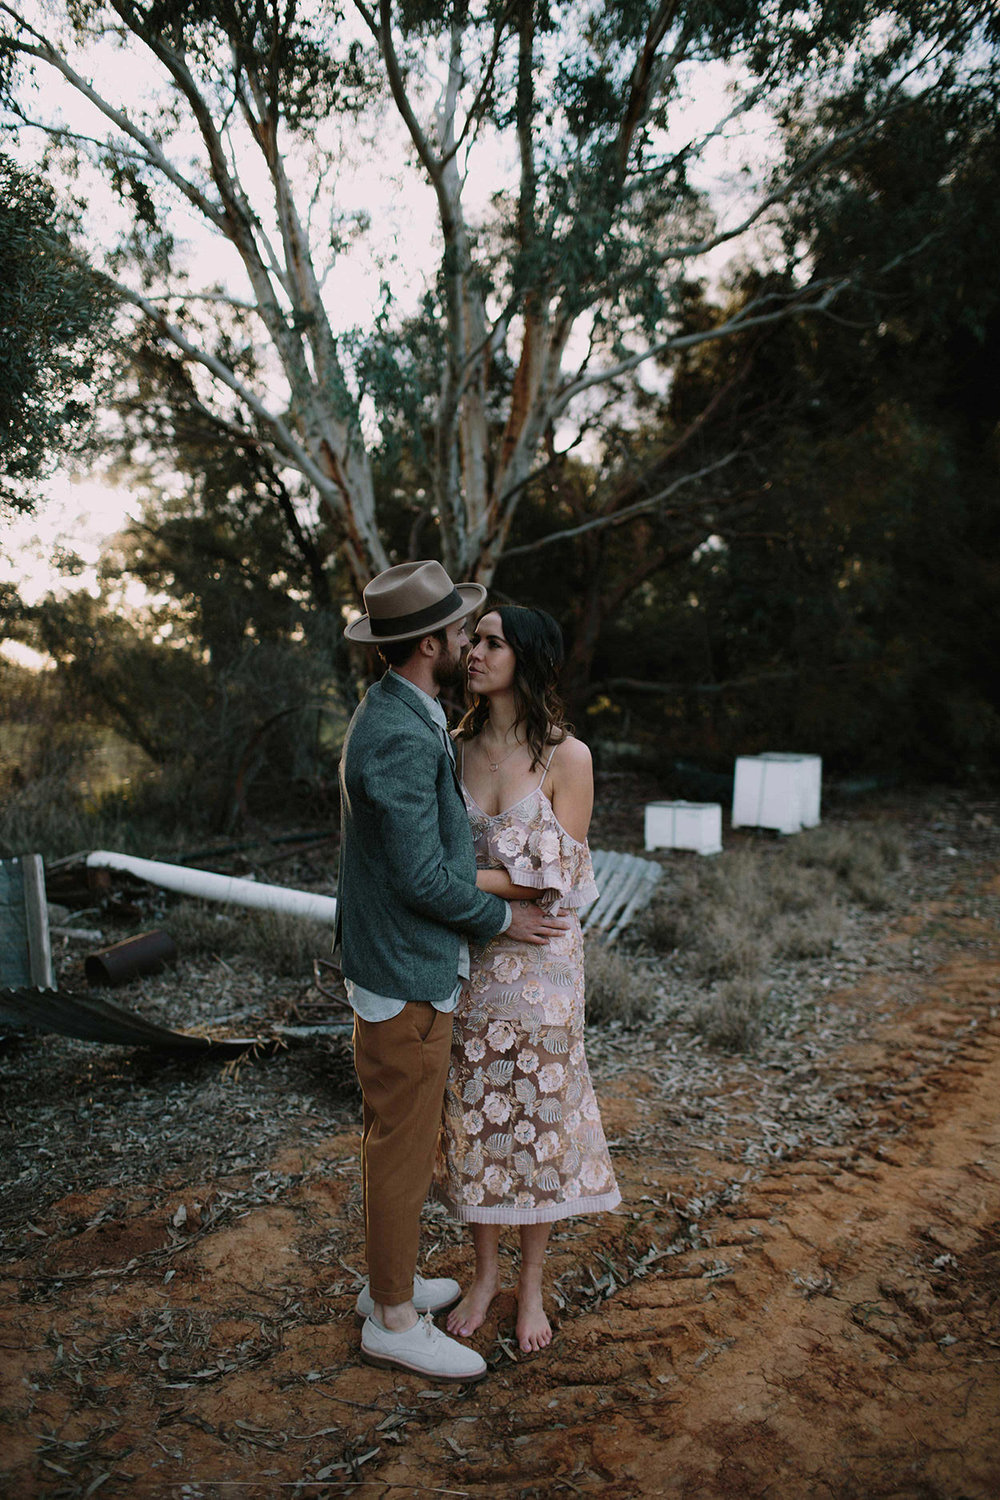 I-Got-You-Babe-Weddings-Cactus-Country-Elopement-Magali-Gabe099.jpg